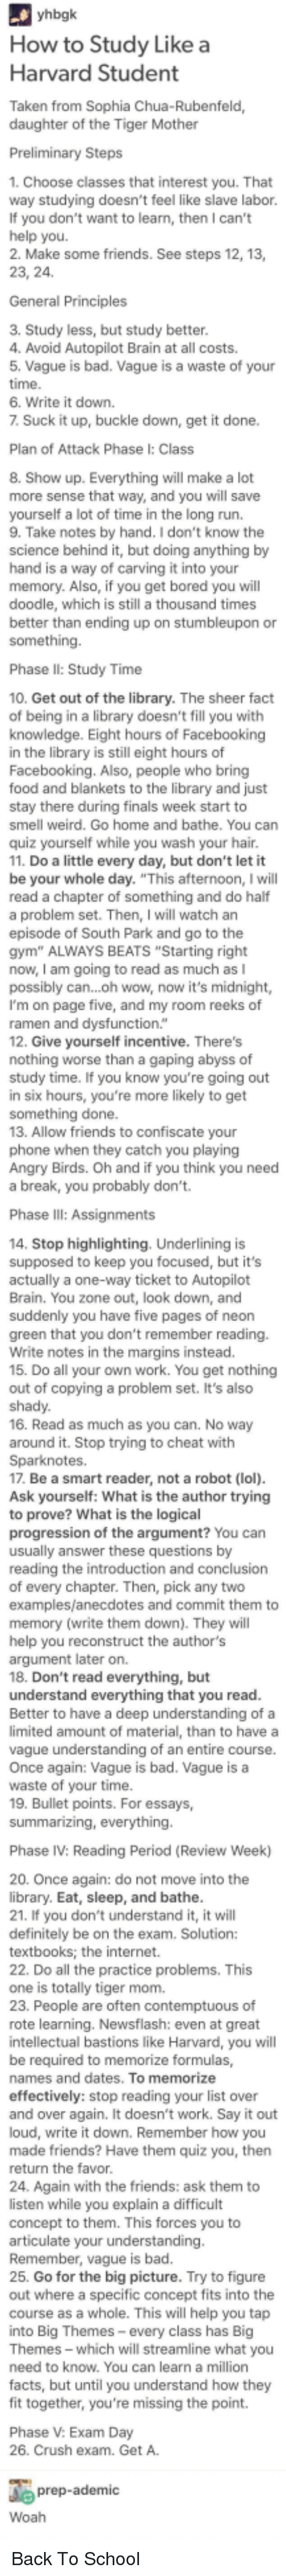 """Angry Birds, Bad, and Bored: How to Study Likea  Harvard Student  Taken from Sophia Chua-Rubenfeld,  daughter of the Tiger Mother  1. Choose classes that interest you. That  way studying doesn't feel like slave labor.  If you don't want to learn, then I can't  2. Make some friends. See steps 12, 13,  General Principles  3. Study less, but study better  4. Avoid Autopilot Brain at all costs.  5. Vague is bad. Vague is a waste of your  time  6. Write it down.  7 Suck it up, buckle down, get it done.  Plan of Attack Phase I: Class  8. Show up. Everything will make a lot  more sense that way, and you will save  yourself a lot of time in the long run.  9. Take notes by hand. I don't know the  science behind it, but doing anything by  hand is a way of carving it into your  memory. Also, if you get bored you will  doodle, which is still a thousand times  better than ending up on stumbleupon or  something.  Phase II: Study Time  10. Get out of the library. The sheer fact  of being in a library doesn't fill you with  knowledge. Eight hours of Facebooking  in the library is still eight hours of  Facebooking. Also, people who bring  food and blankets to the library and just  stay there during finals week start to  smell weird. Go home and bathe. You can  quiz yourself while you wash your hair  11. Do a little every day, but don't let it  be your whole day. """"This afternoon, I will  0  a problem set. Then, I will watch an  episode of South Park and go to the  gym"""" ALWAYS BEATS """"Starting right  now, I am going to read as much as I  possibly can...oh wow, now it's midnight,  I'm on page five, and my room reeks of  ramen  12. Give yourself incentive. There's  function  worse  abyss  study time. If you know you're going out  in six hours, you're more likely to get  something done.  13. Allow friends to confiscate your  phone when they catch you playing  Angry Birds. Oh and if you think you need  a break, you probably don't.  Phase  14. Stop highlighting. Underlining is  supposed to """